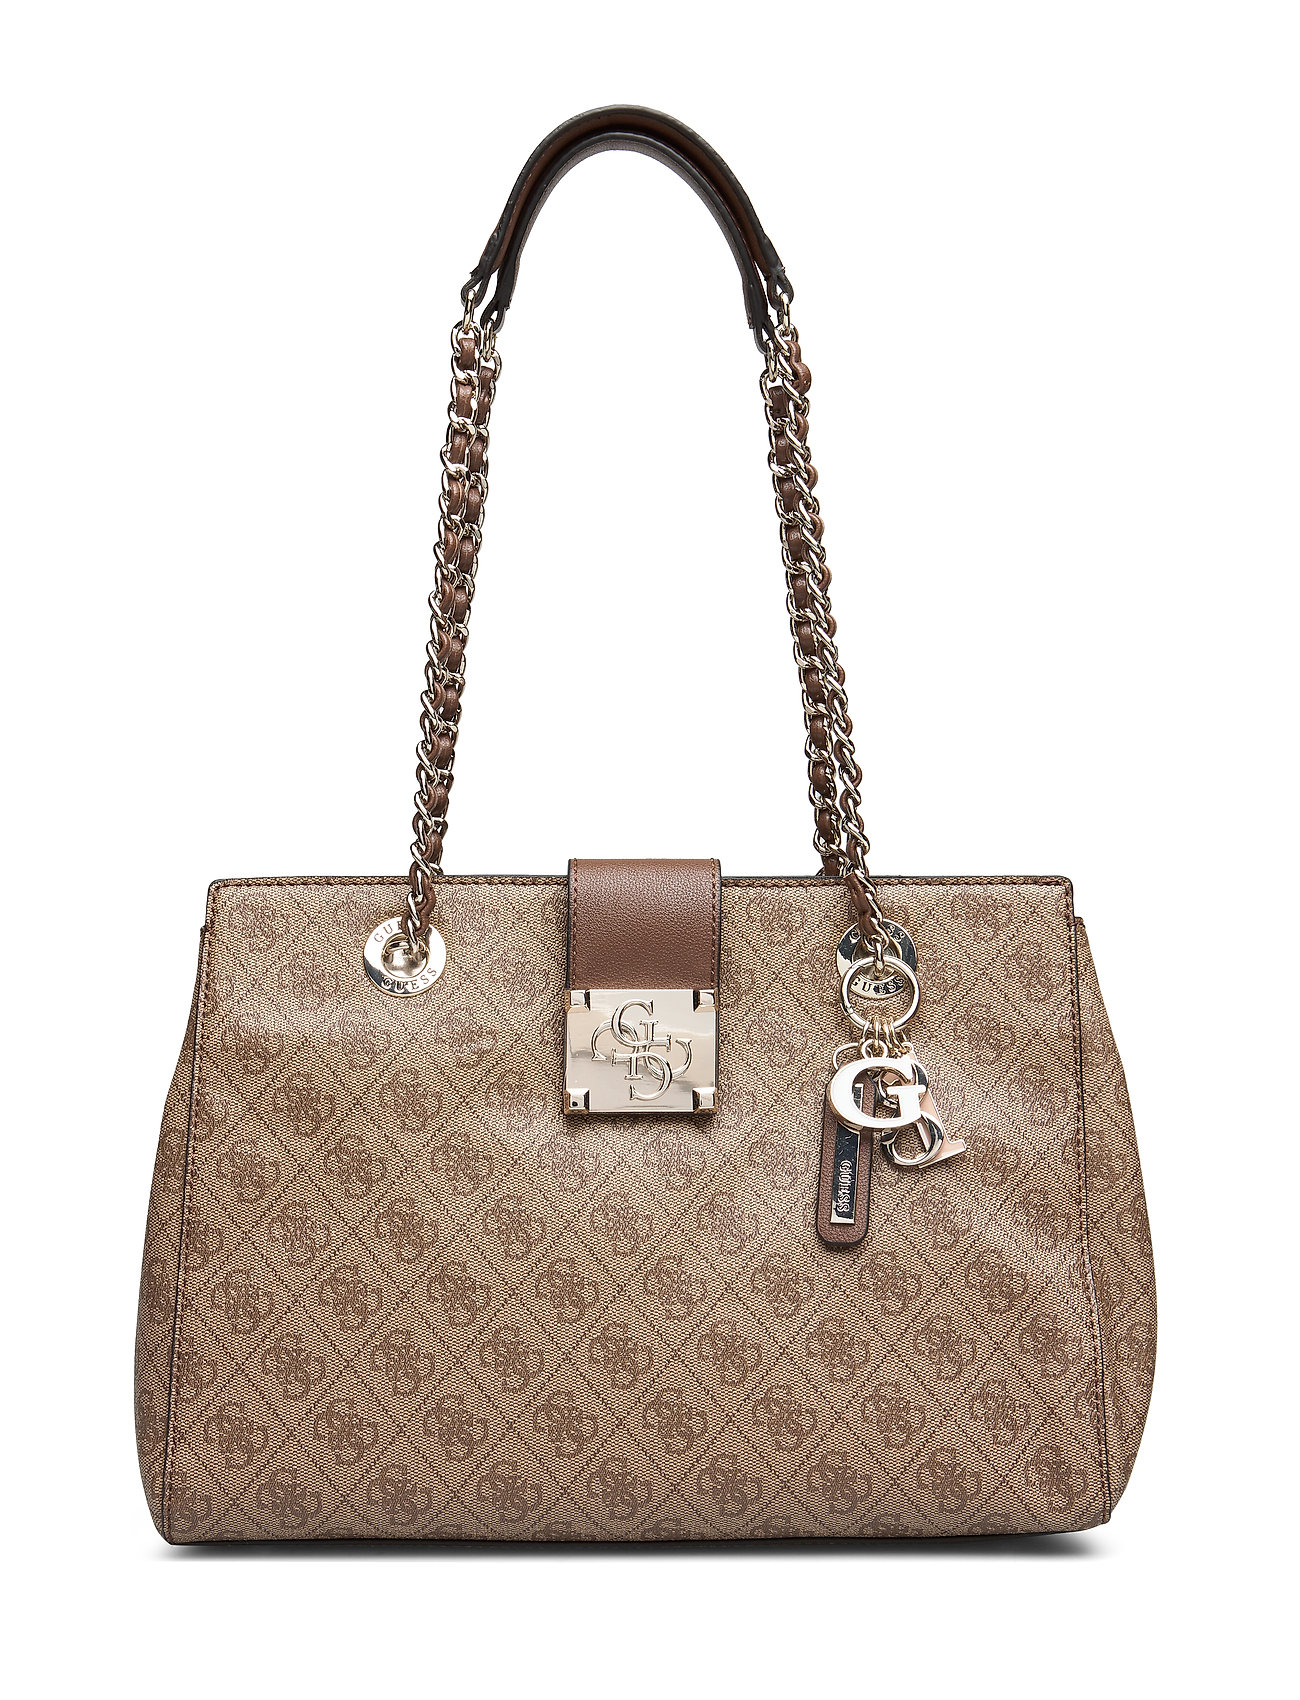 GUESS LOGO CITY LUXURY SATCHEL - BROWN